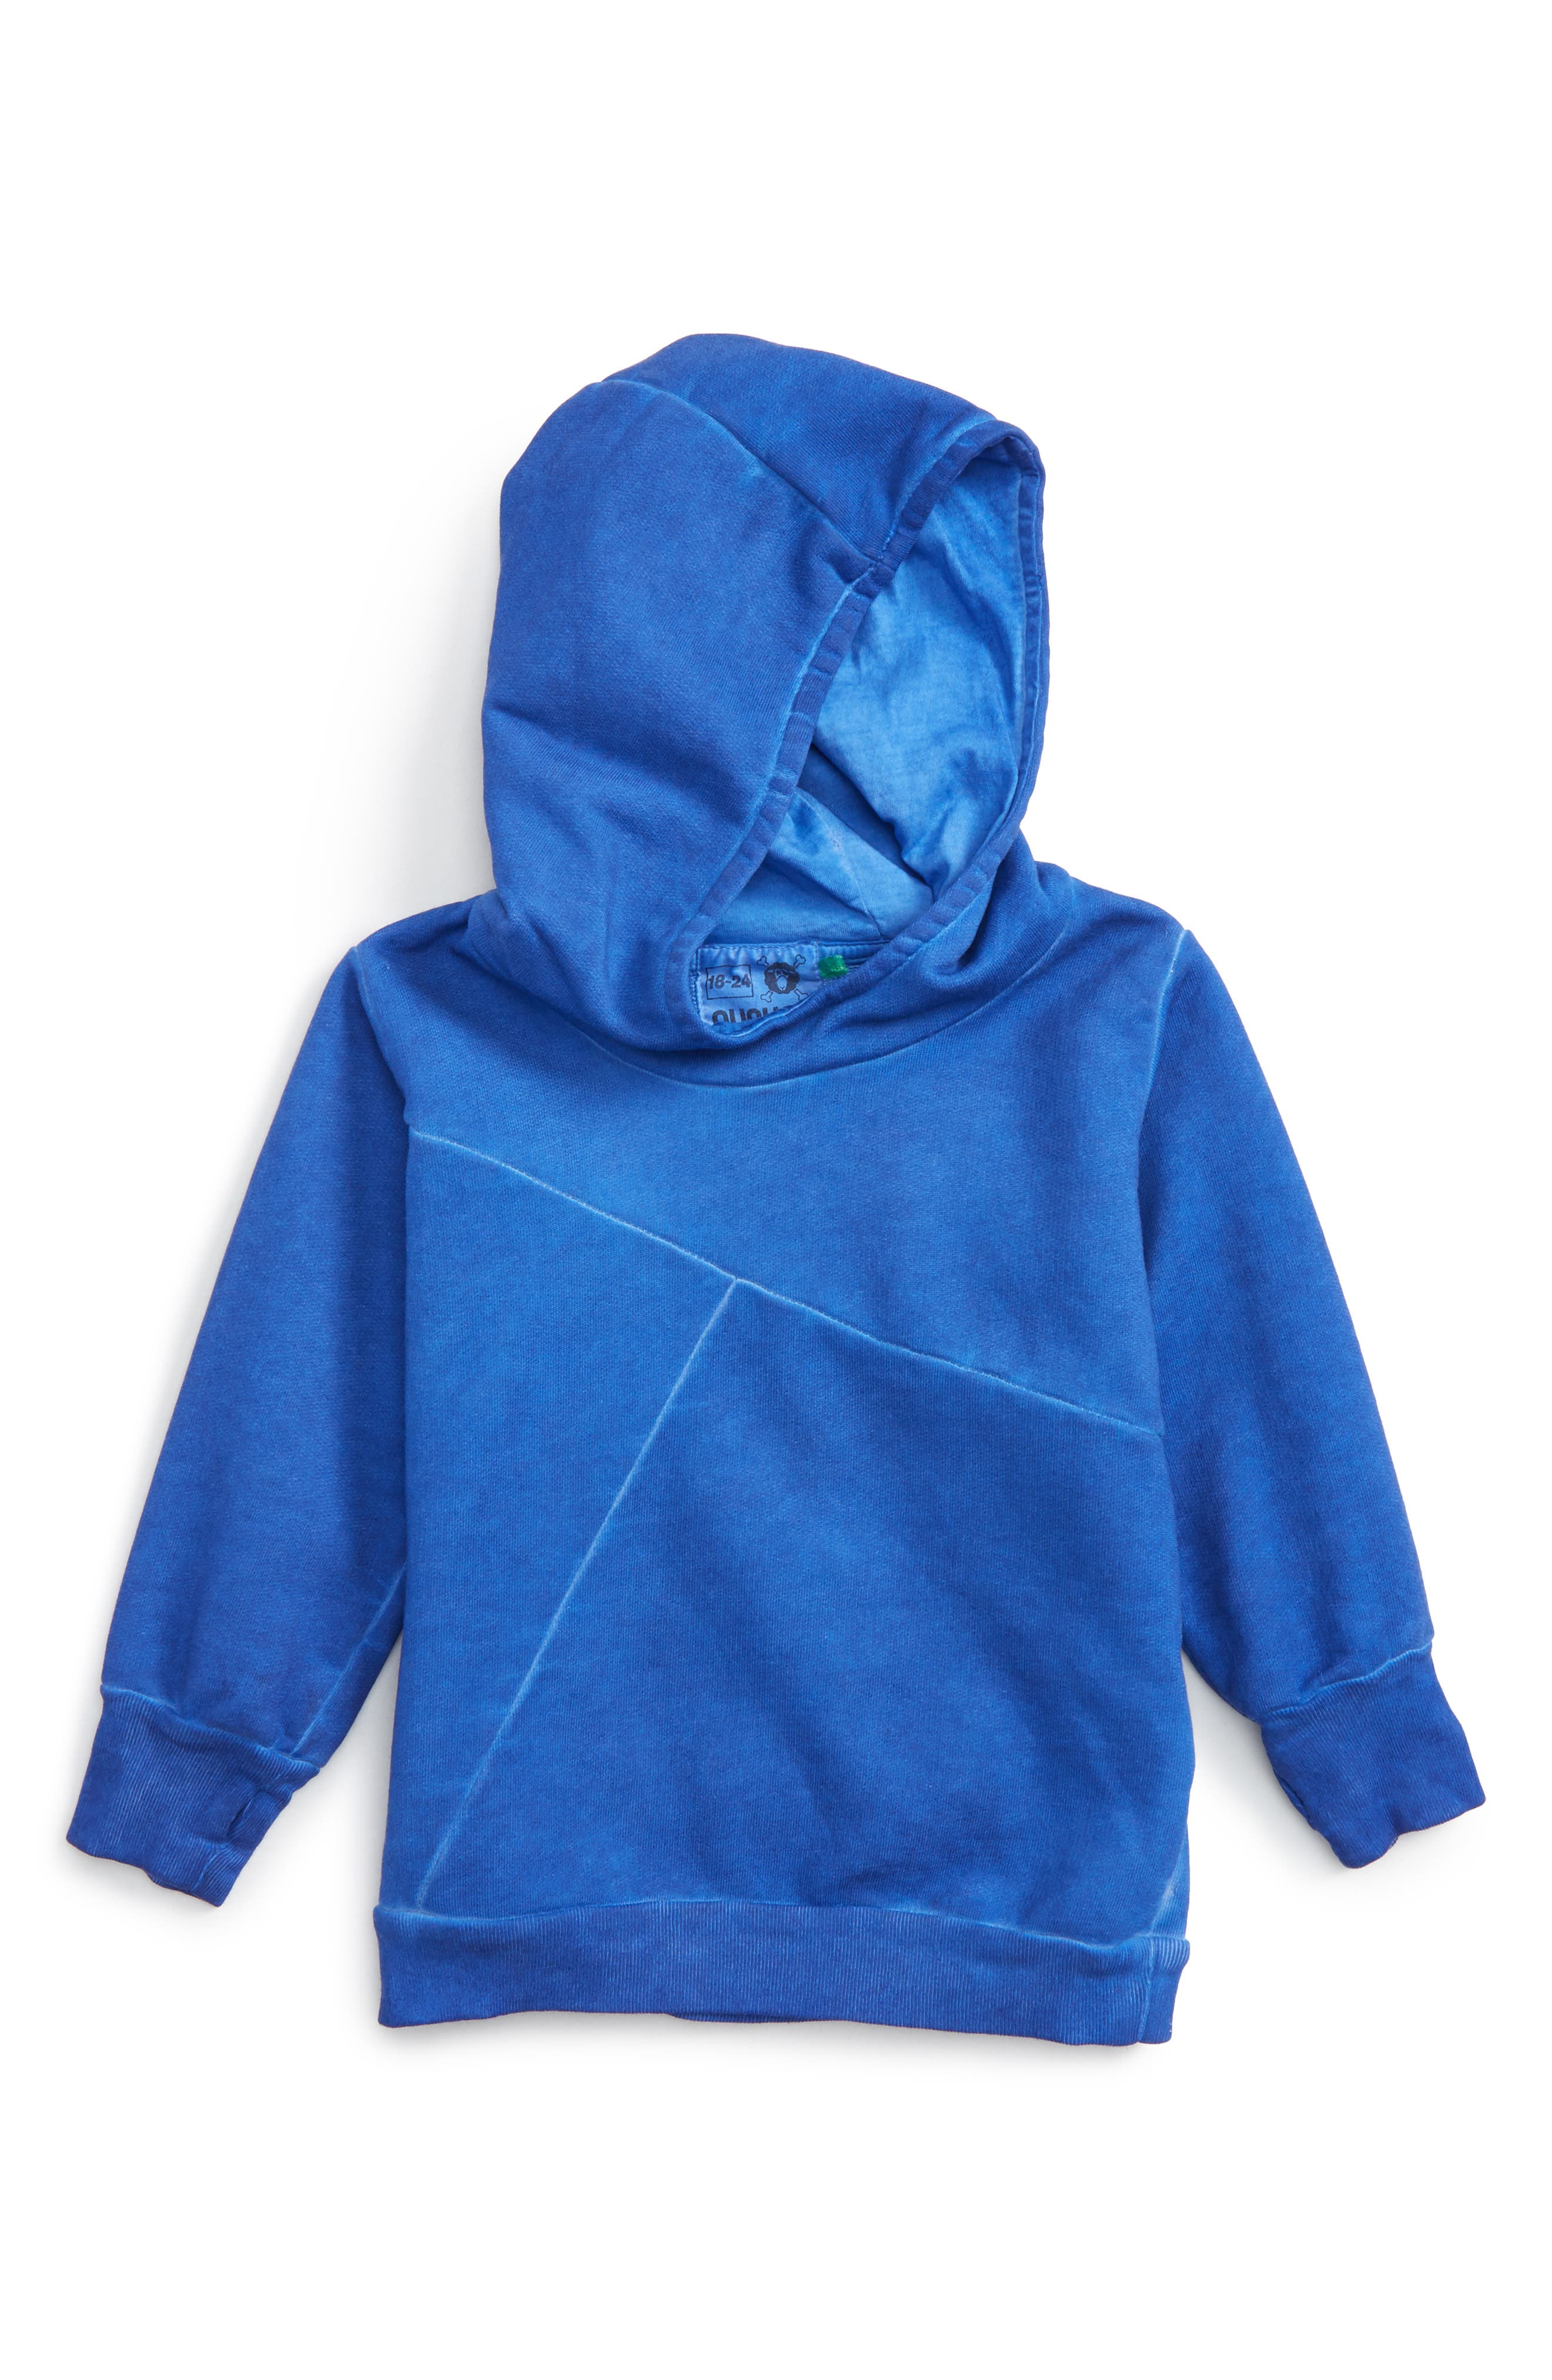 Numbered Hoodie,                         Main,                         color, Dirty Blue